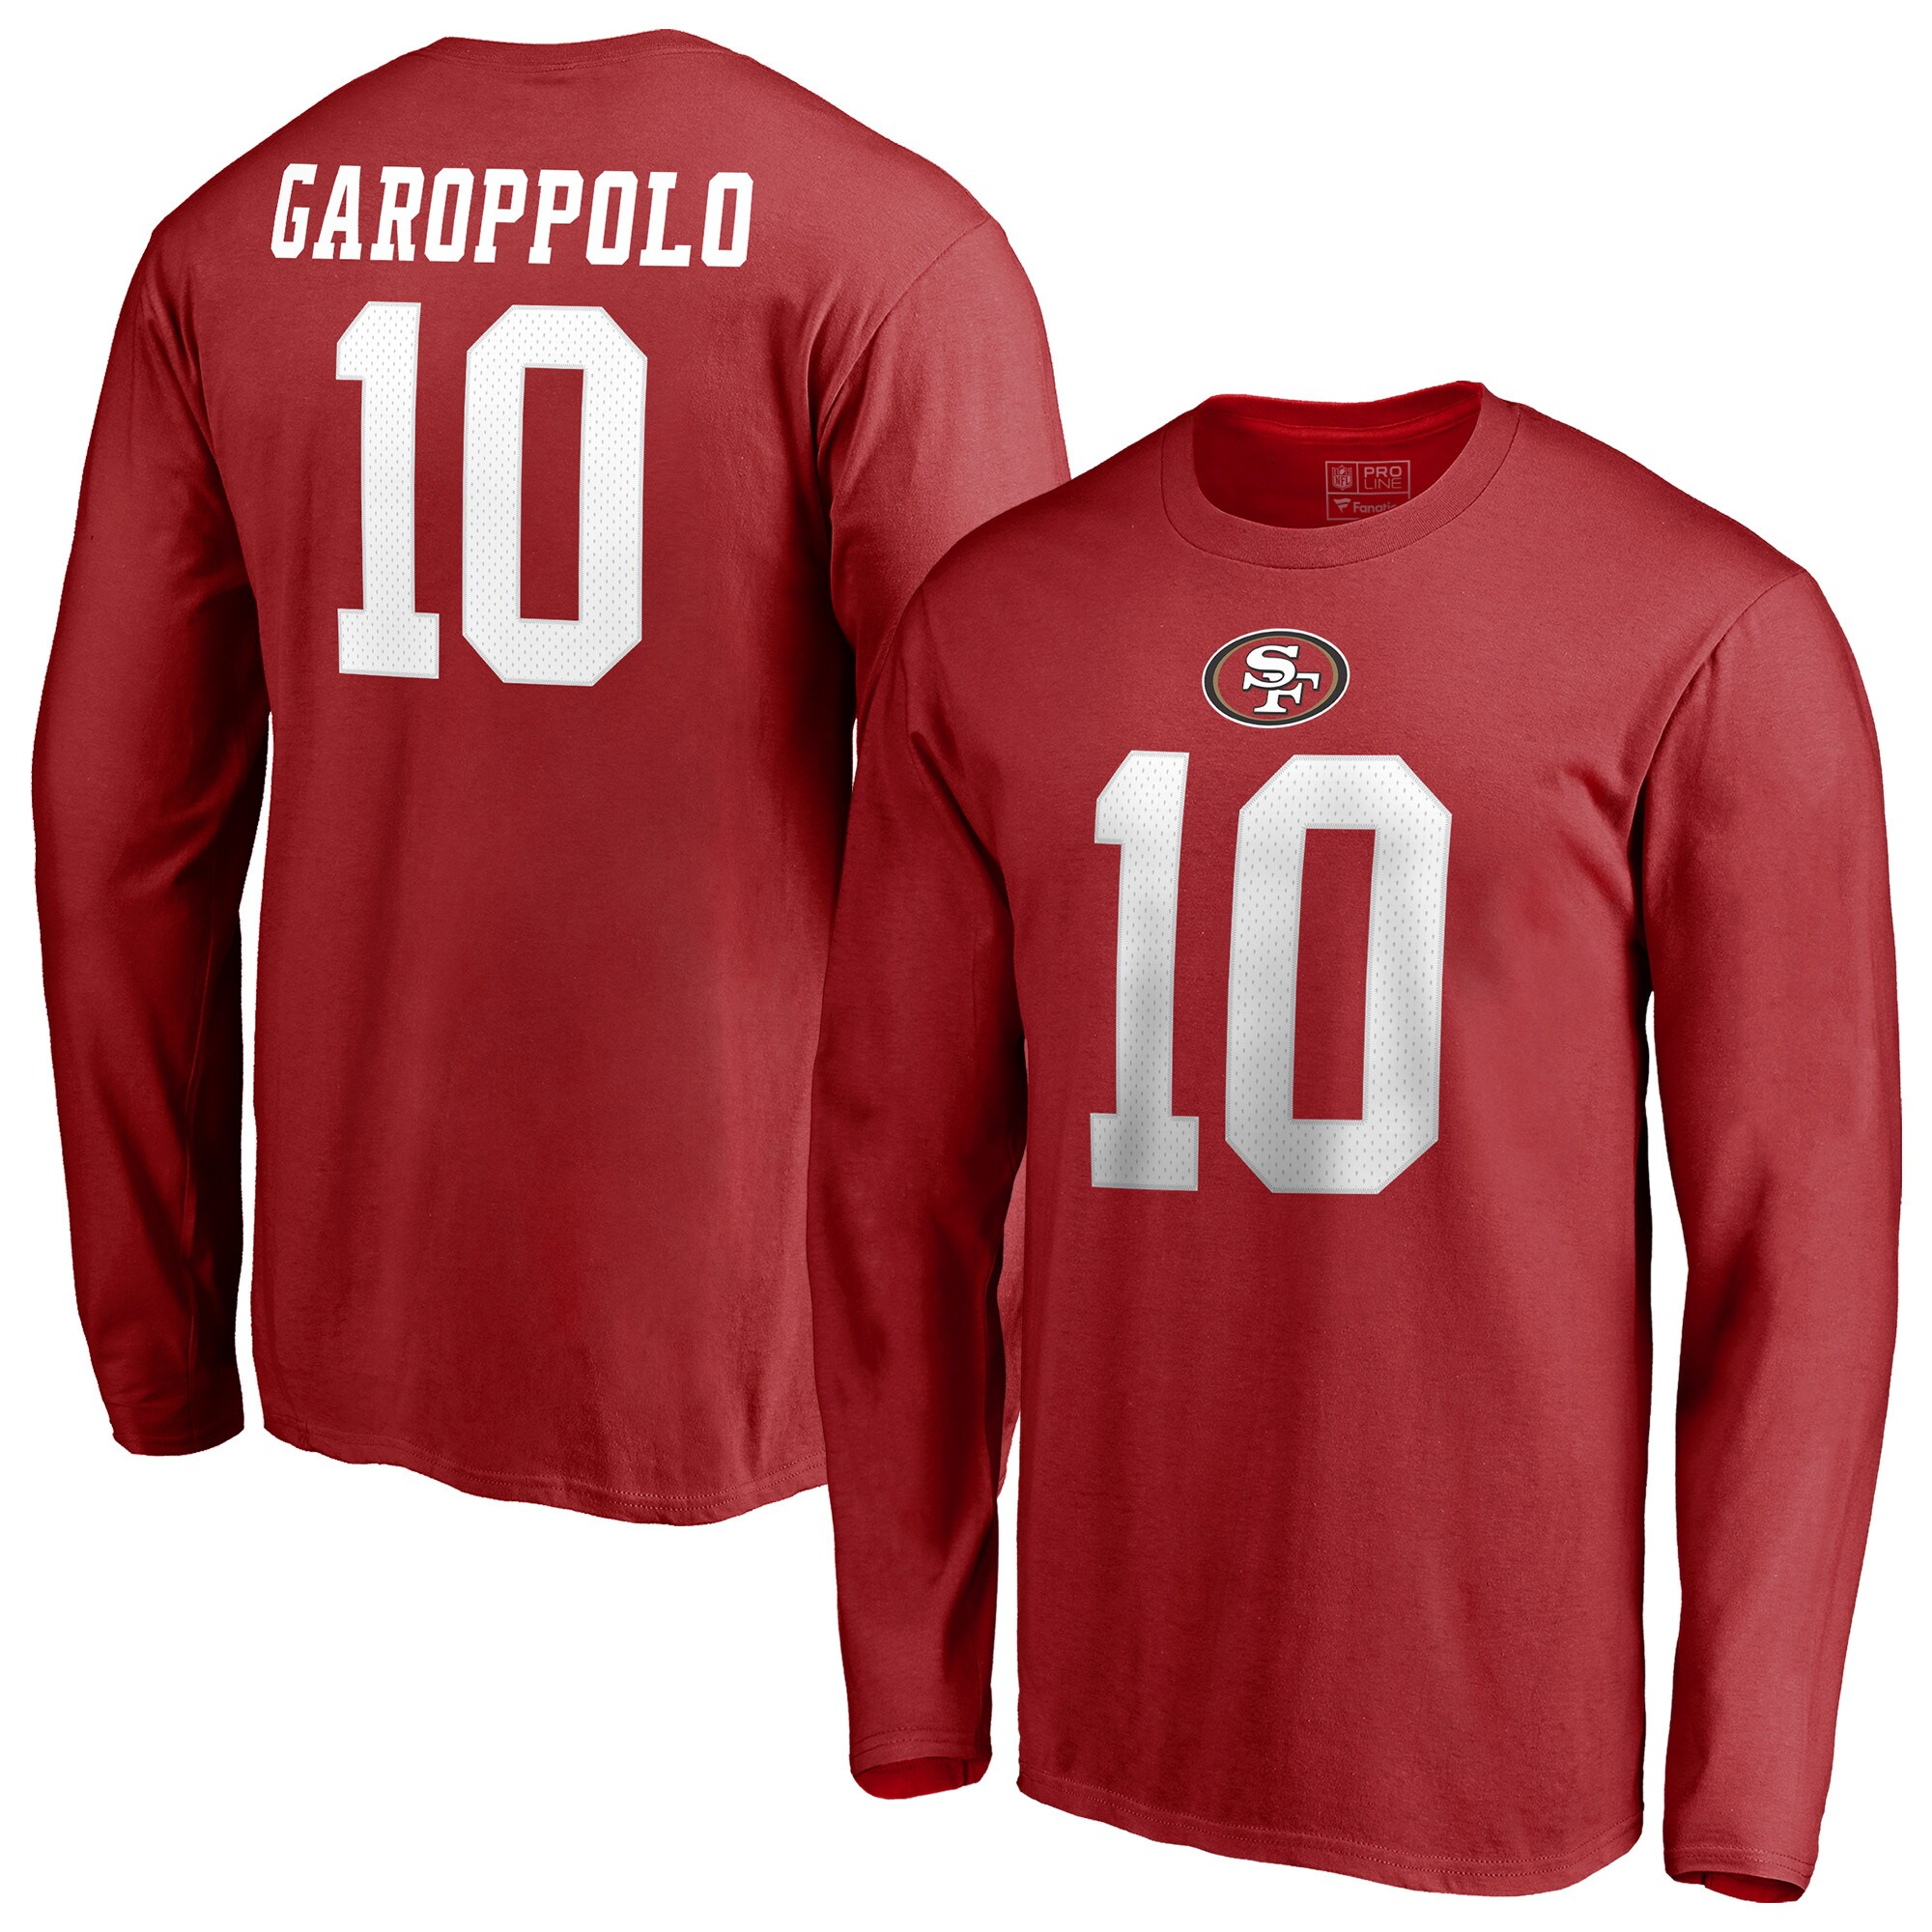 Jimmy Garoppolo San Francisco 49ers NFL Pro Line by Fanatics Branded Authentic Stack Name & Number Long Sleeve T-Shirt - Red